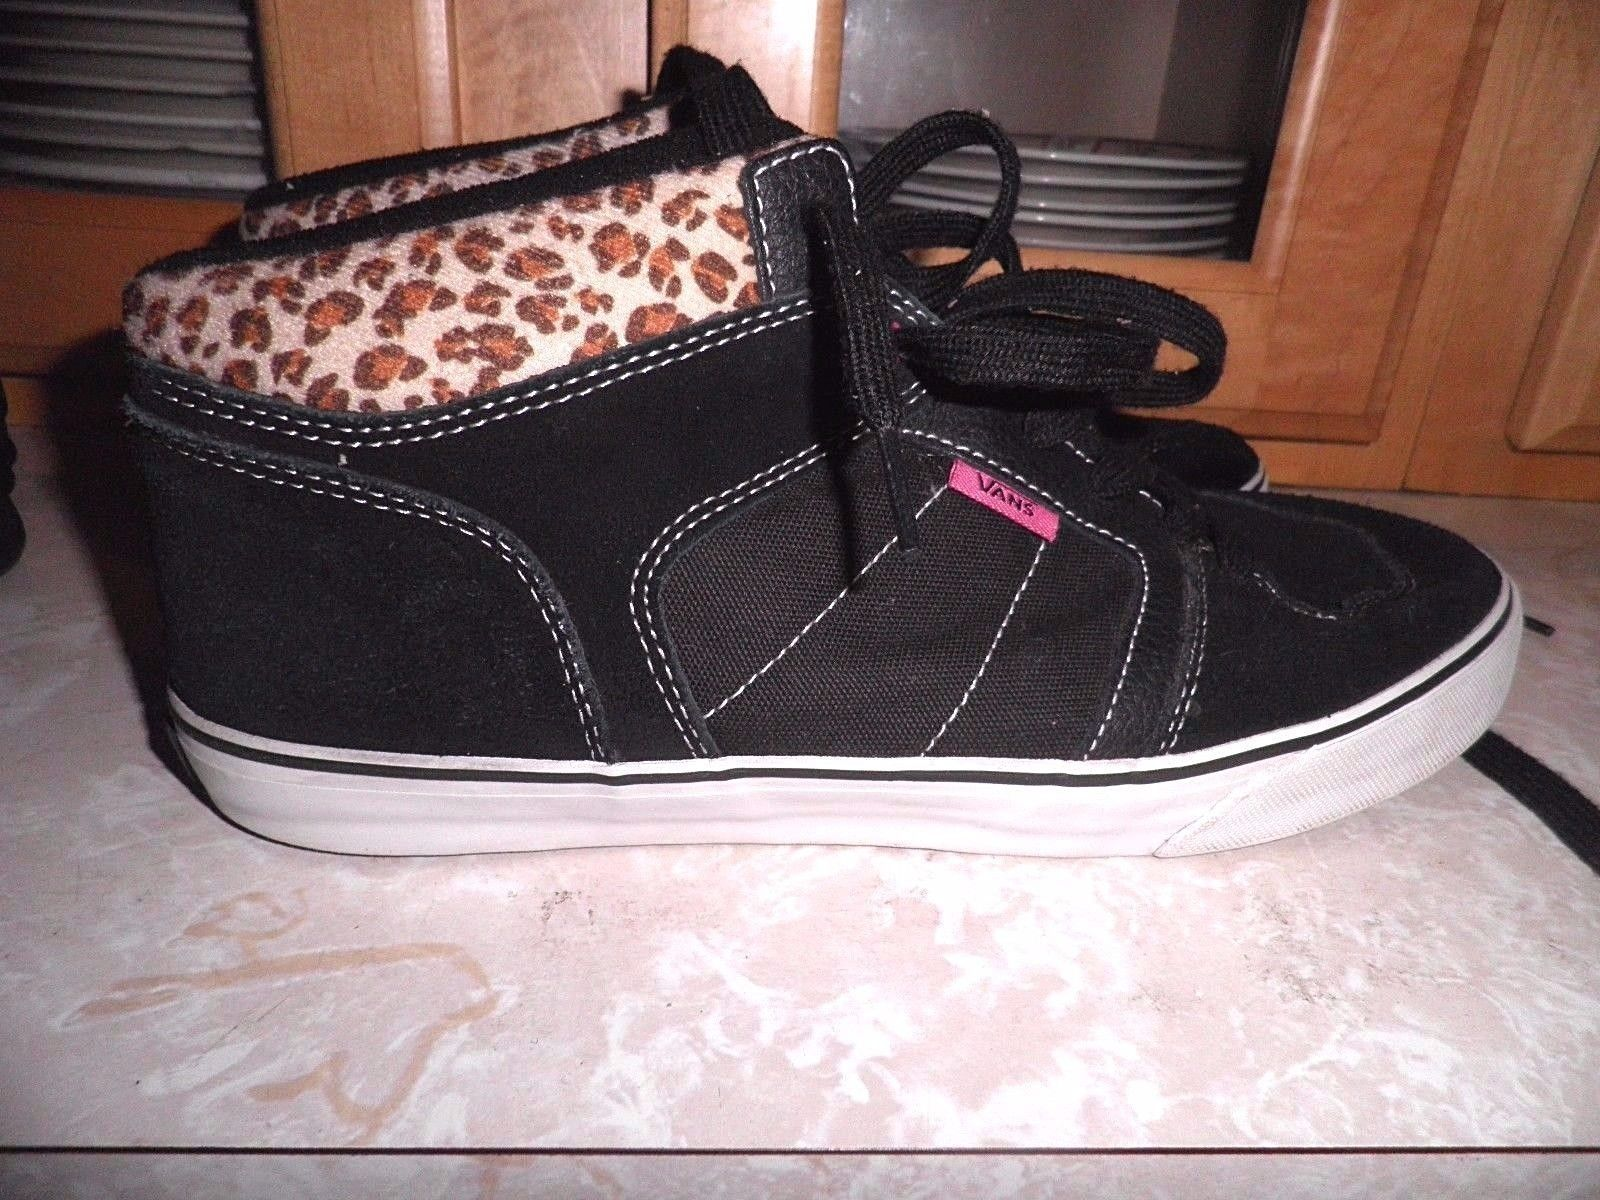 bc165a21d116 Very Rare Womens Vans Half Cab/Chukka Black Suede with Animal Print Tops  Size 10 | eBay